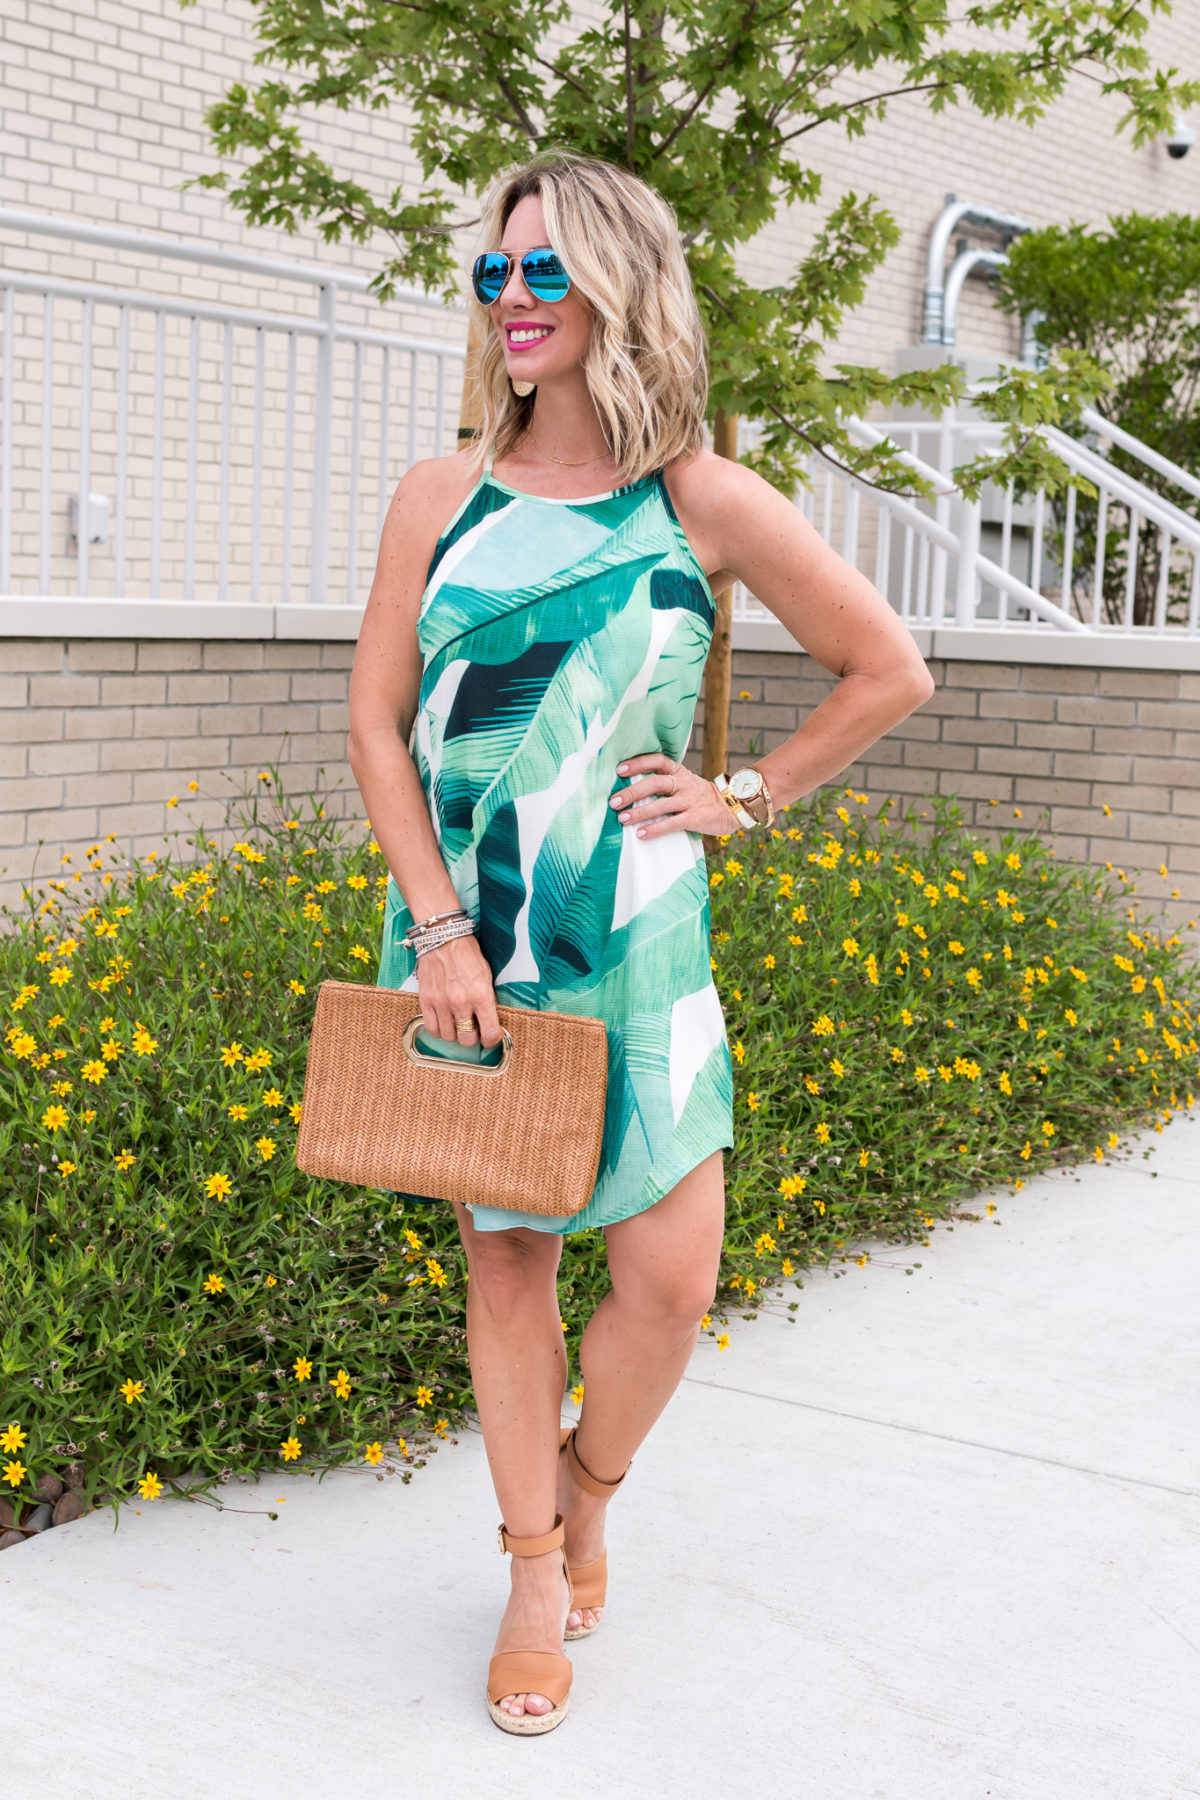 Amazon Fashion Prime Day Haul - Leaf Dress and a woven clutch